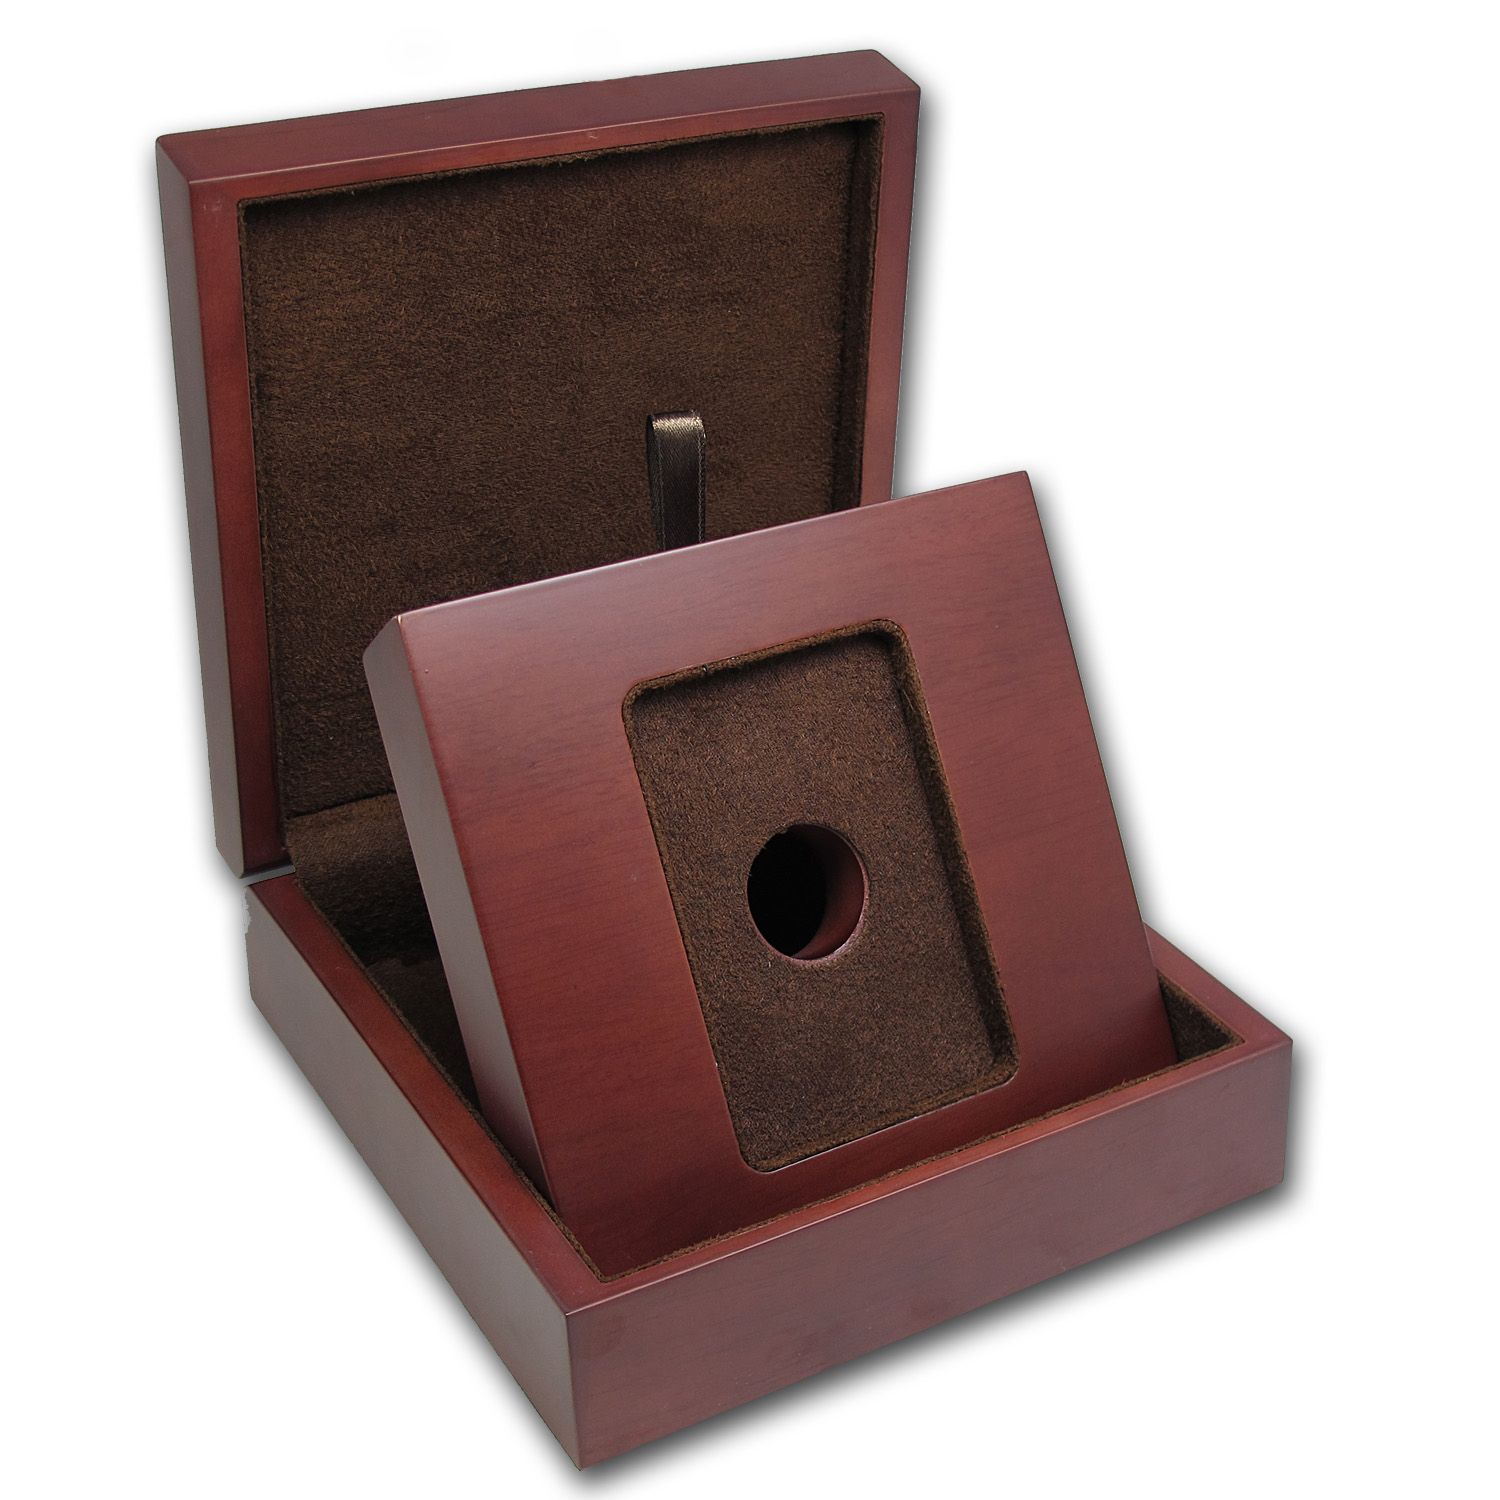 APMEX Wood Presentation Box - 1 oz APMEX Gold Bar in TEP